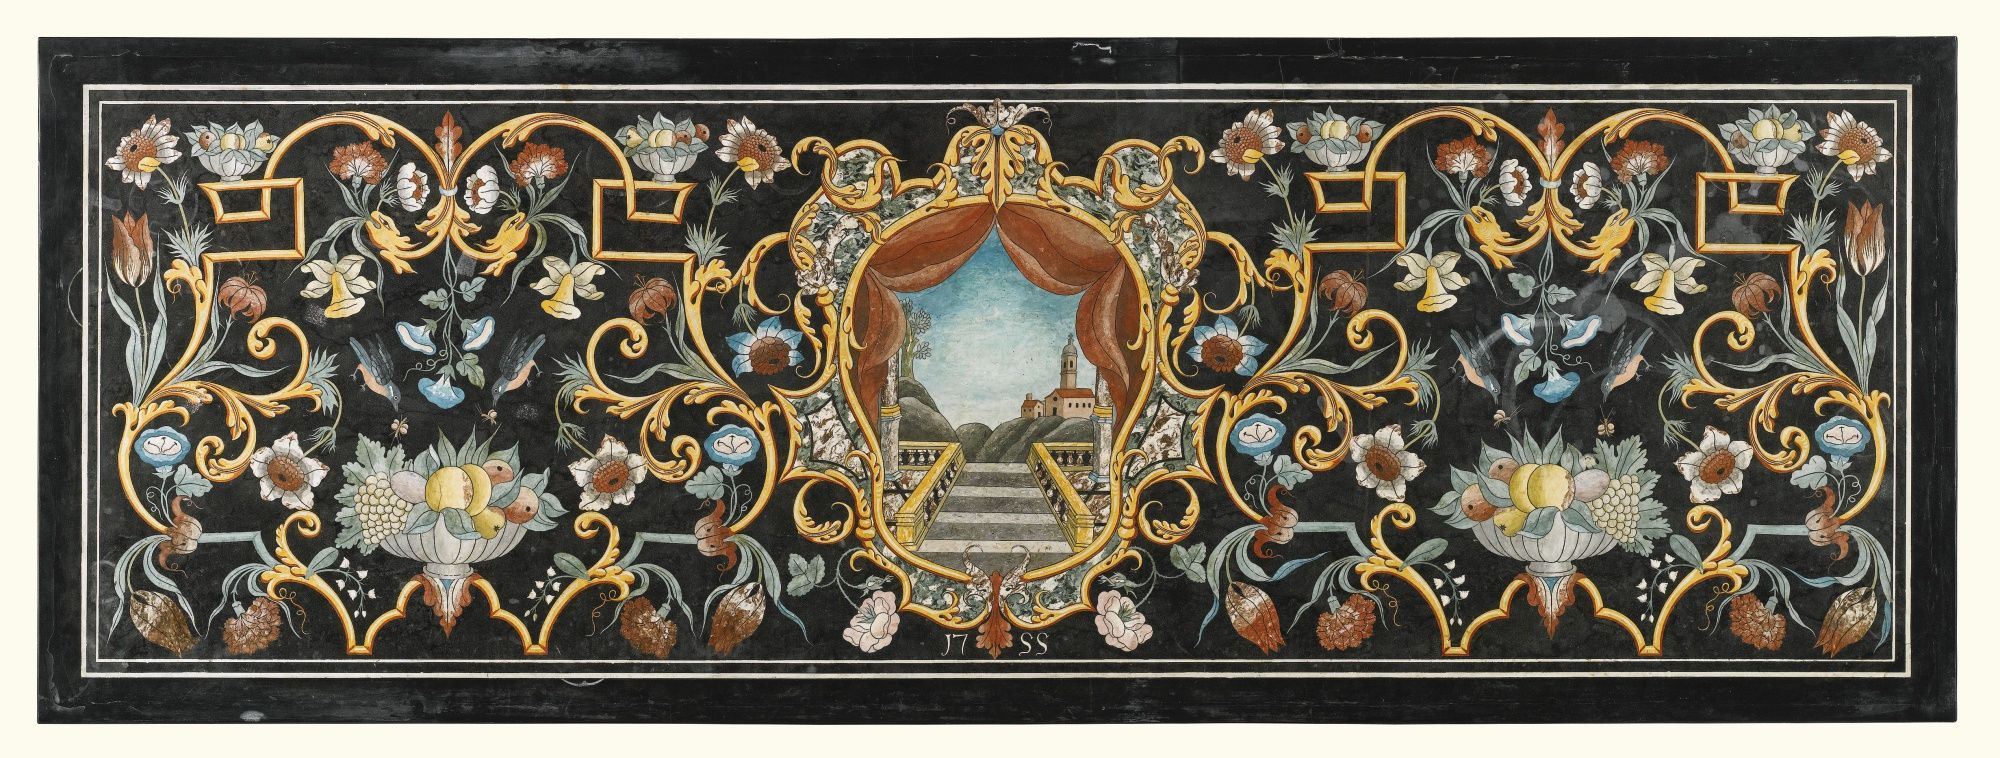 An Italian scagliola table top, in 18th century style  with a central cartouche depicting a staircase, balustrade and a village on a hill, dated 1755